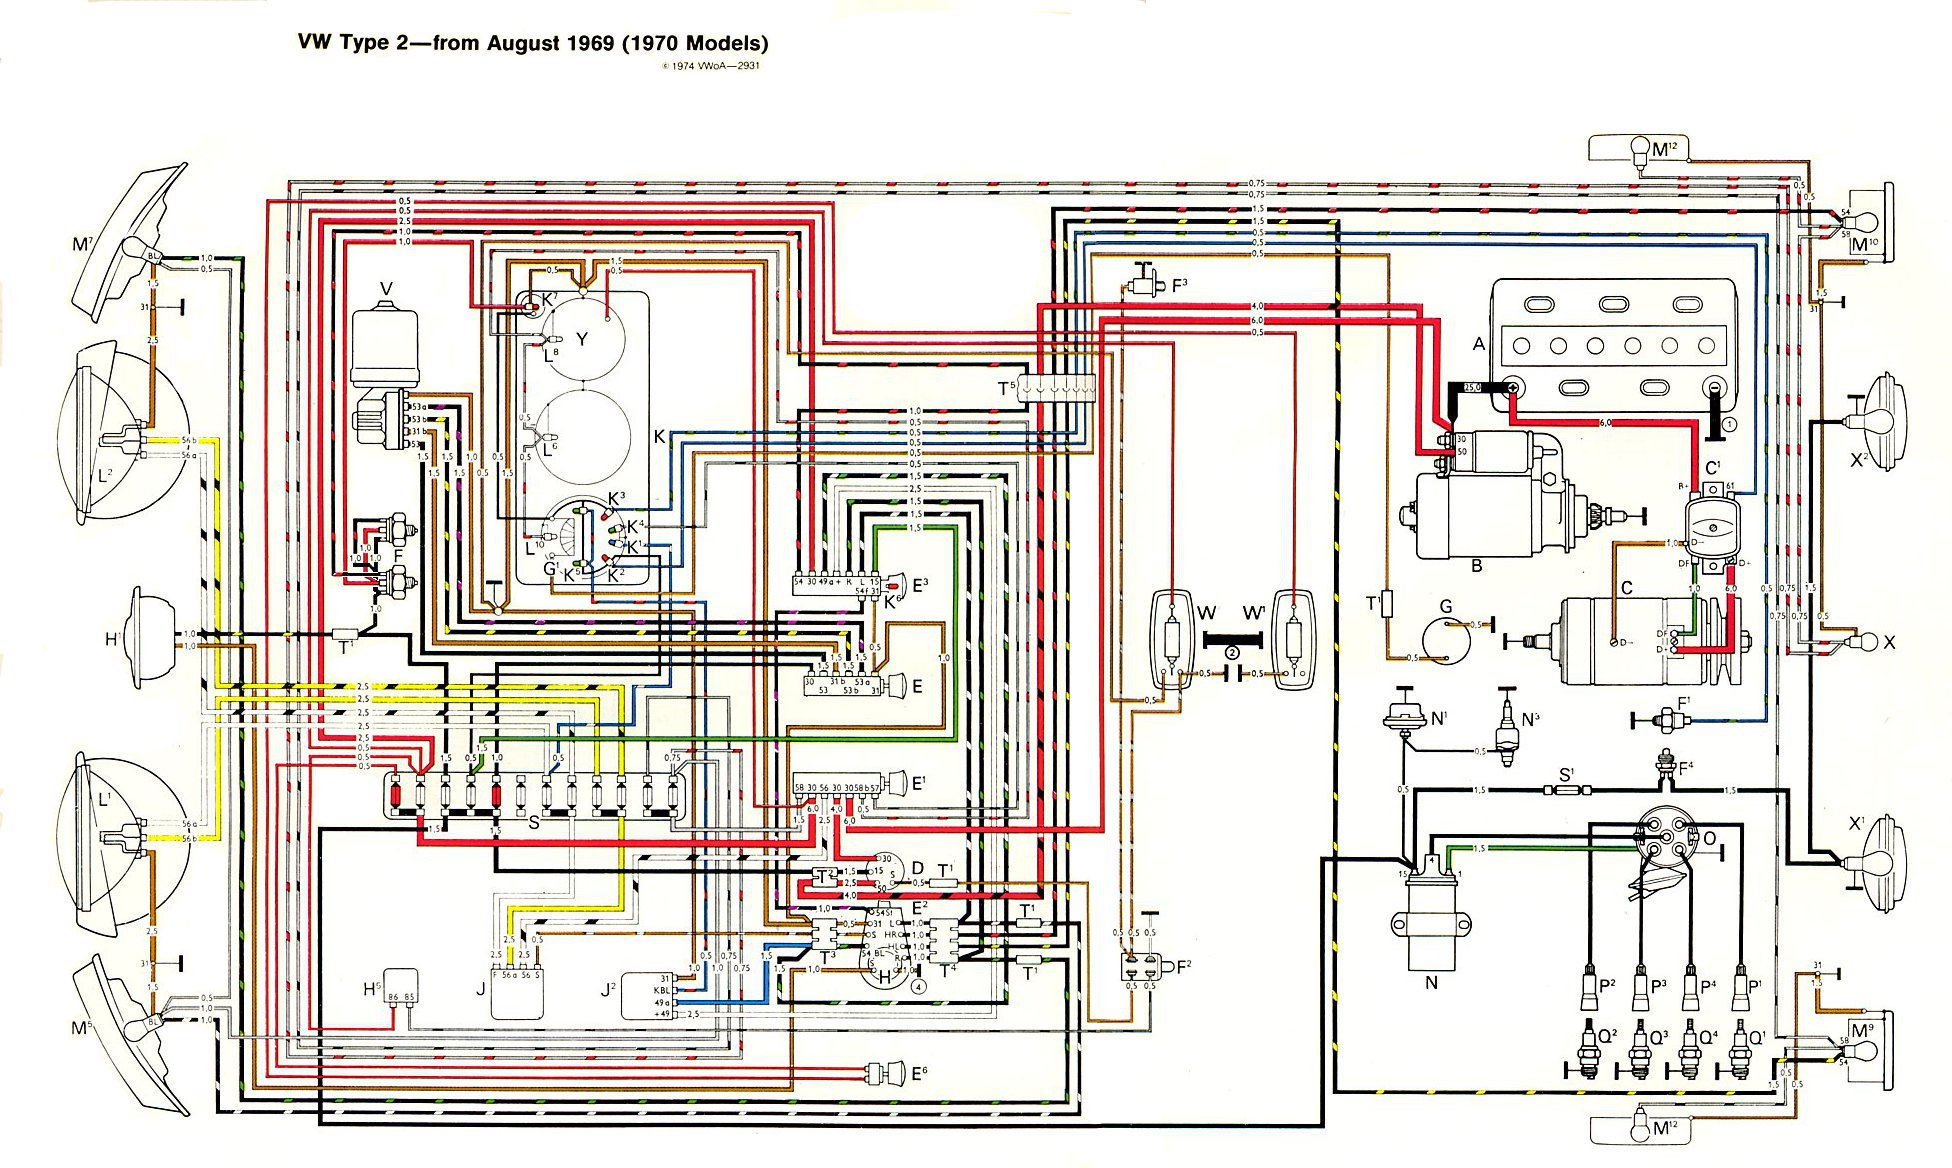 Heater Elektrisch Thesamba.com :: Type 2 Wiring Diagrams